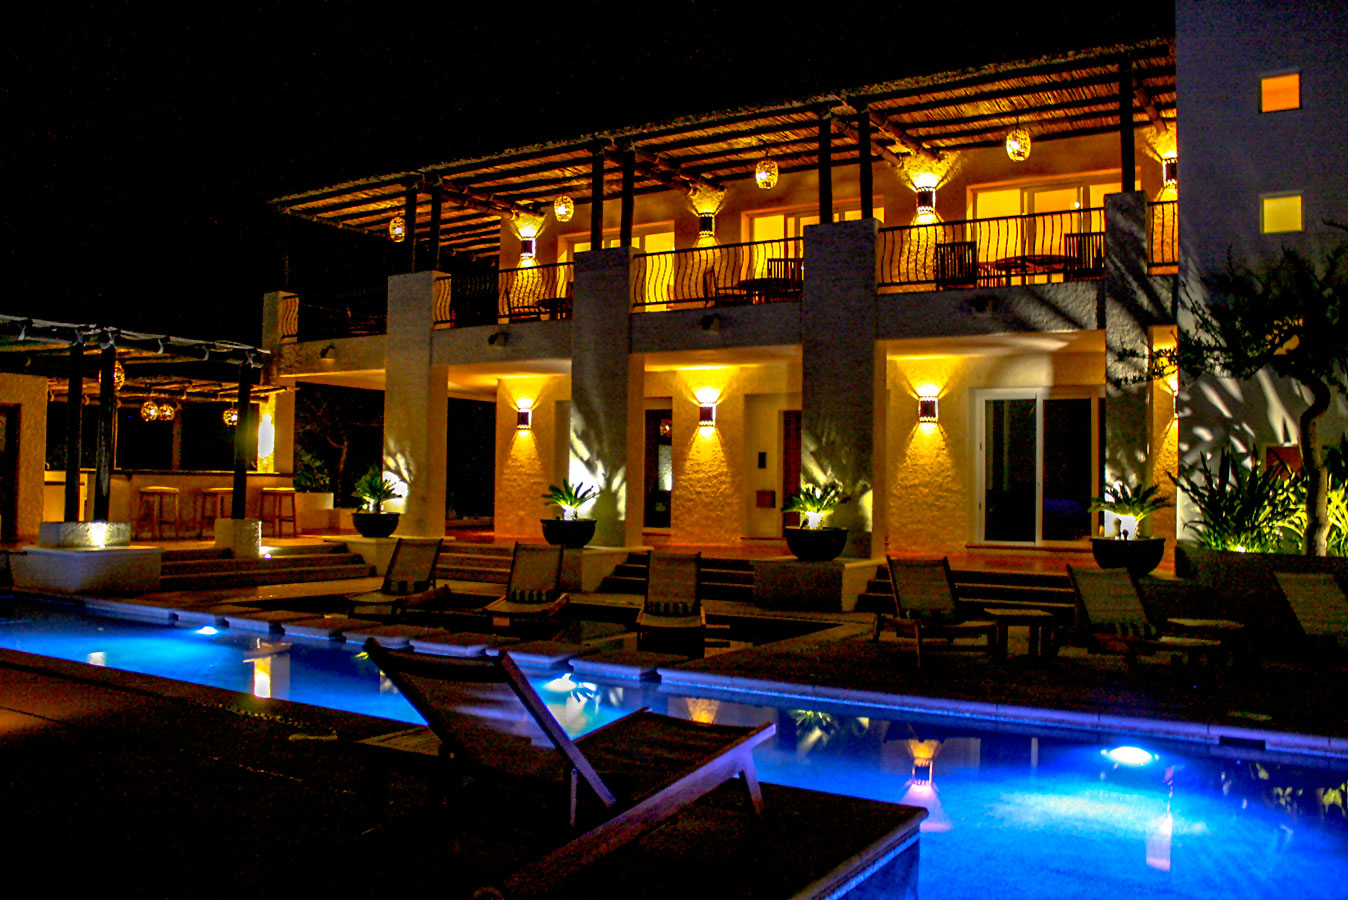 Pool Lit up at Night - Yoga Retreat - Mexico